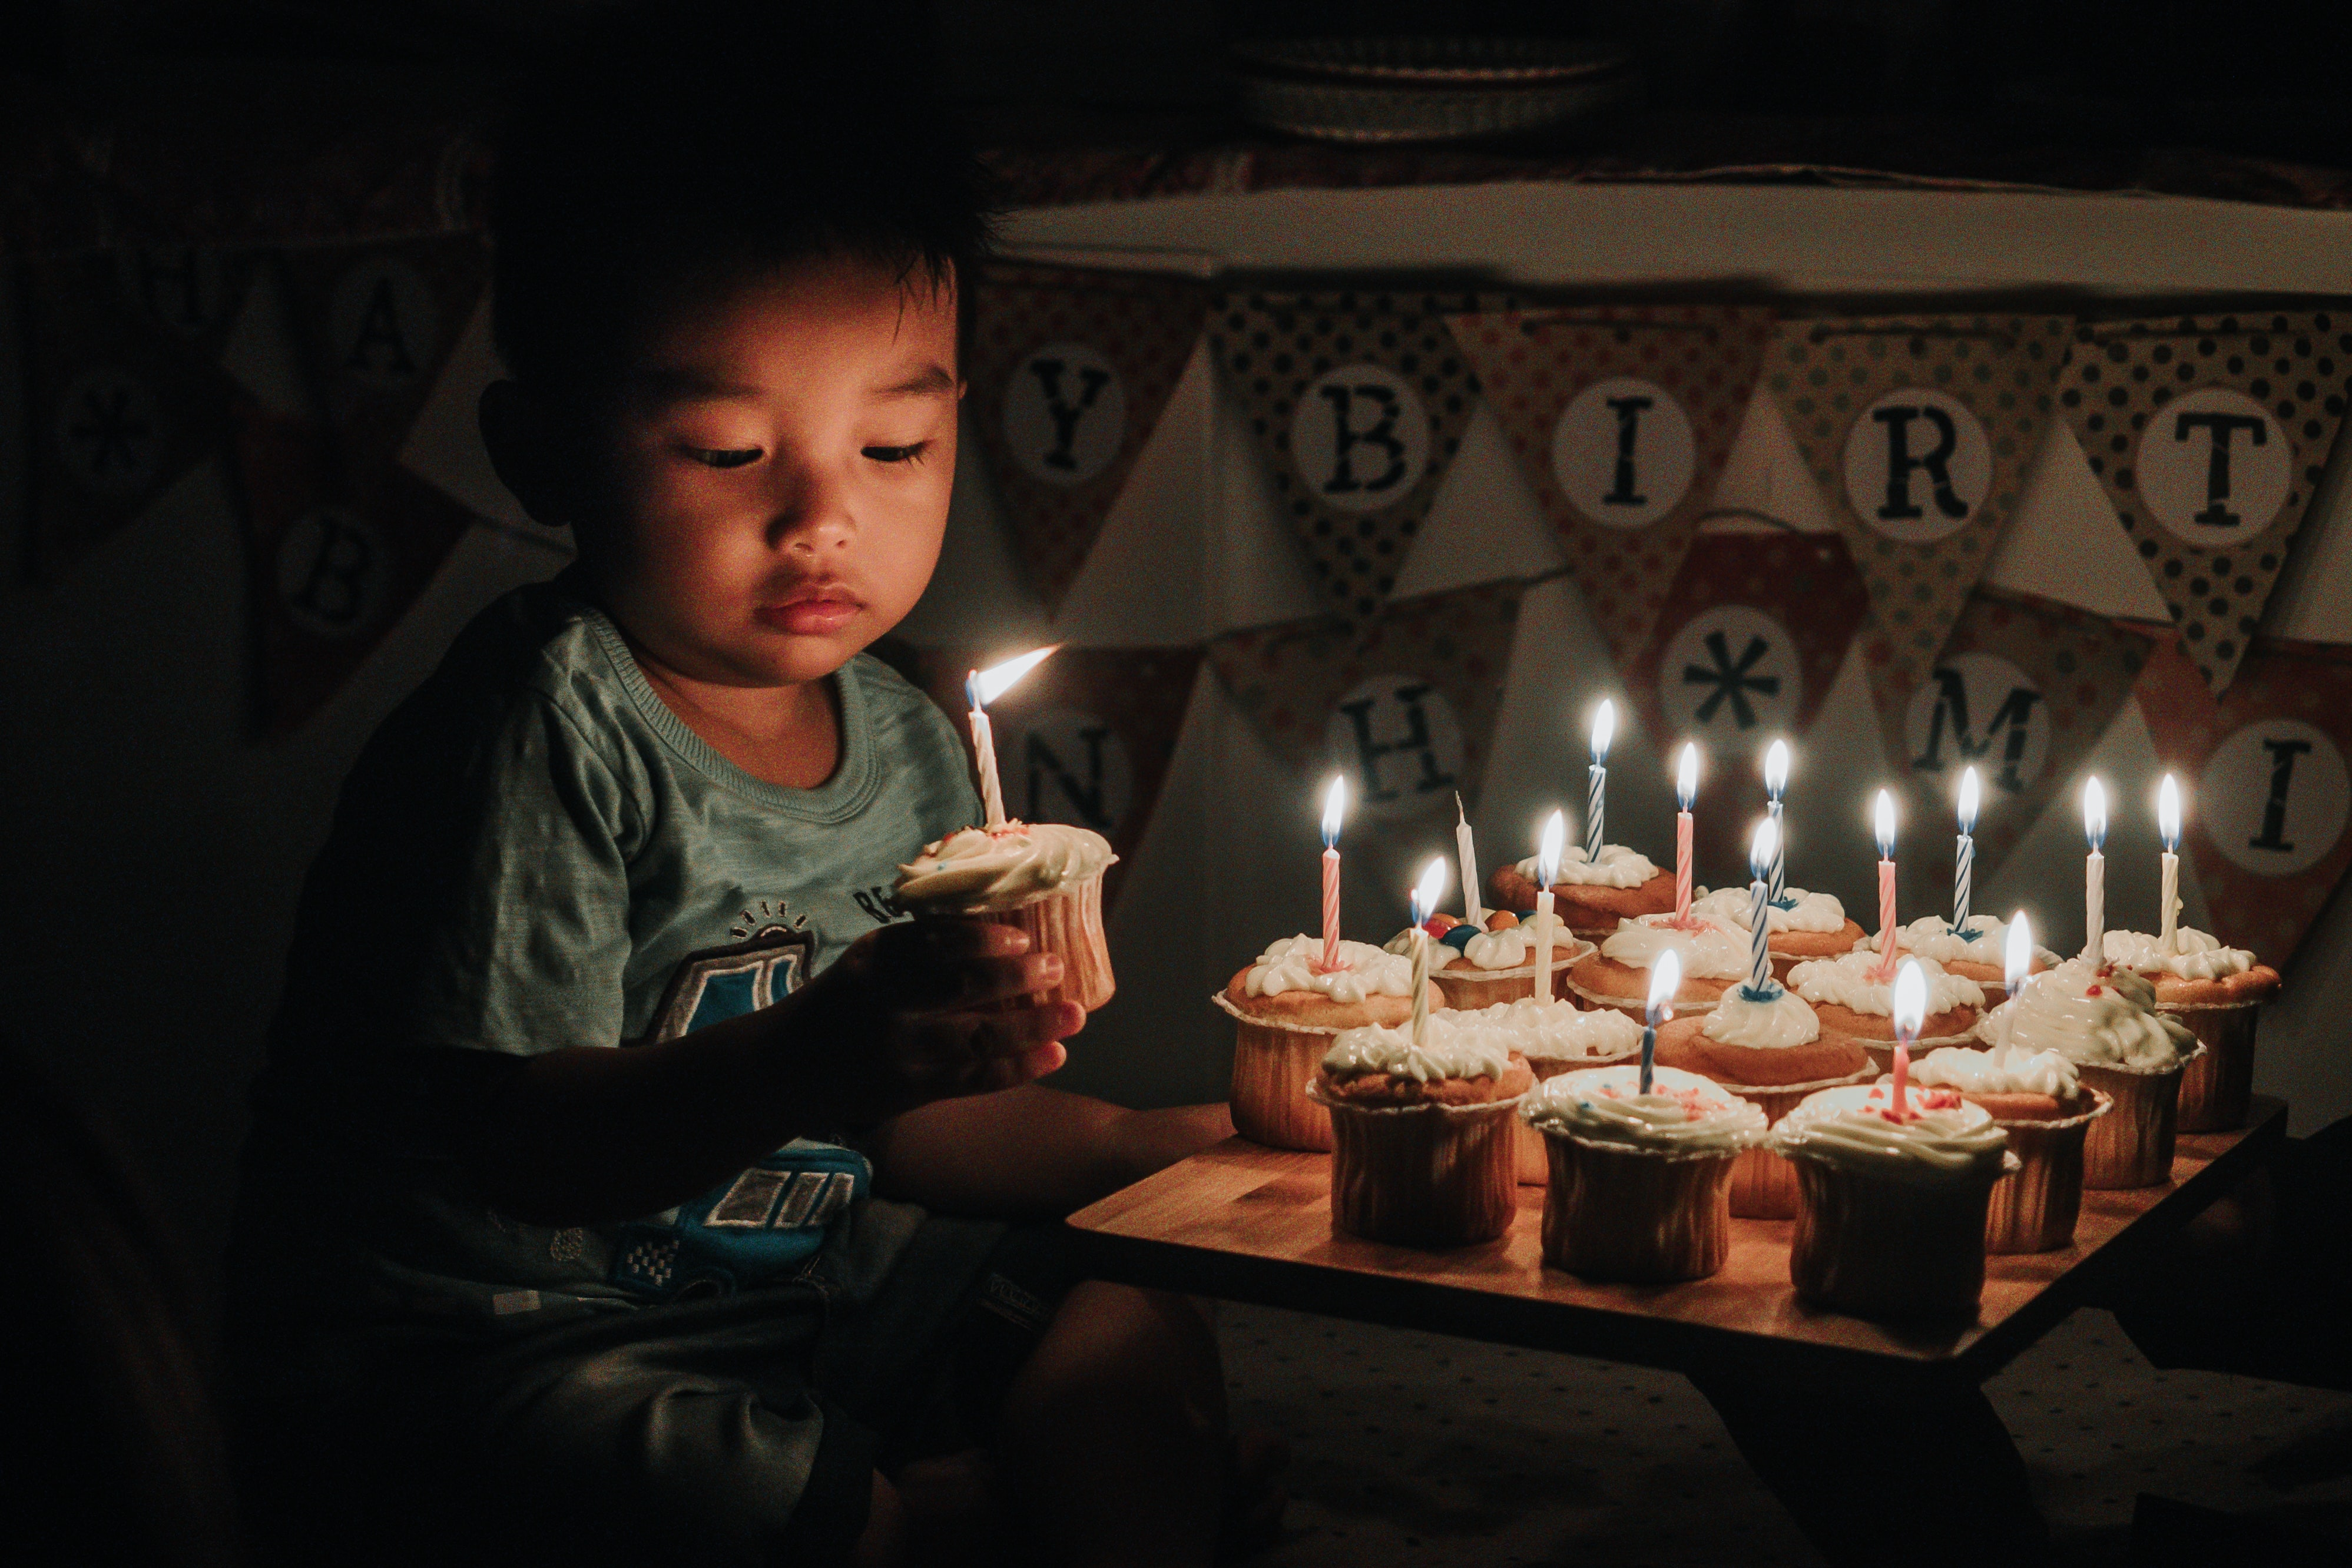 boy holding one of many cupcakes with lit candles